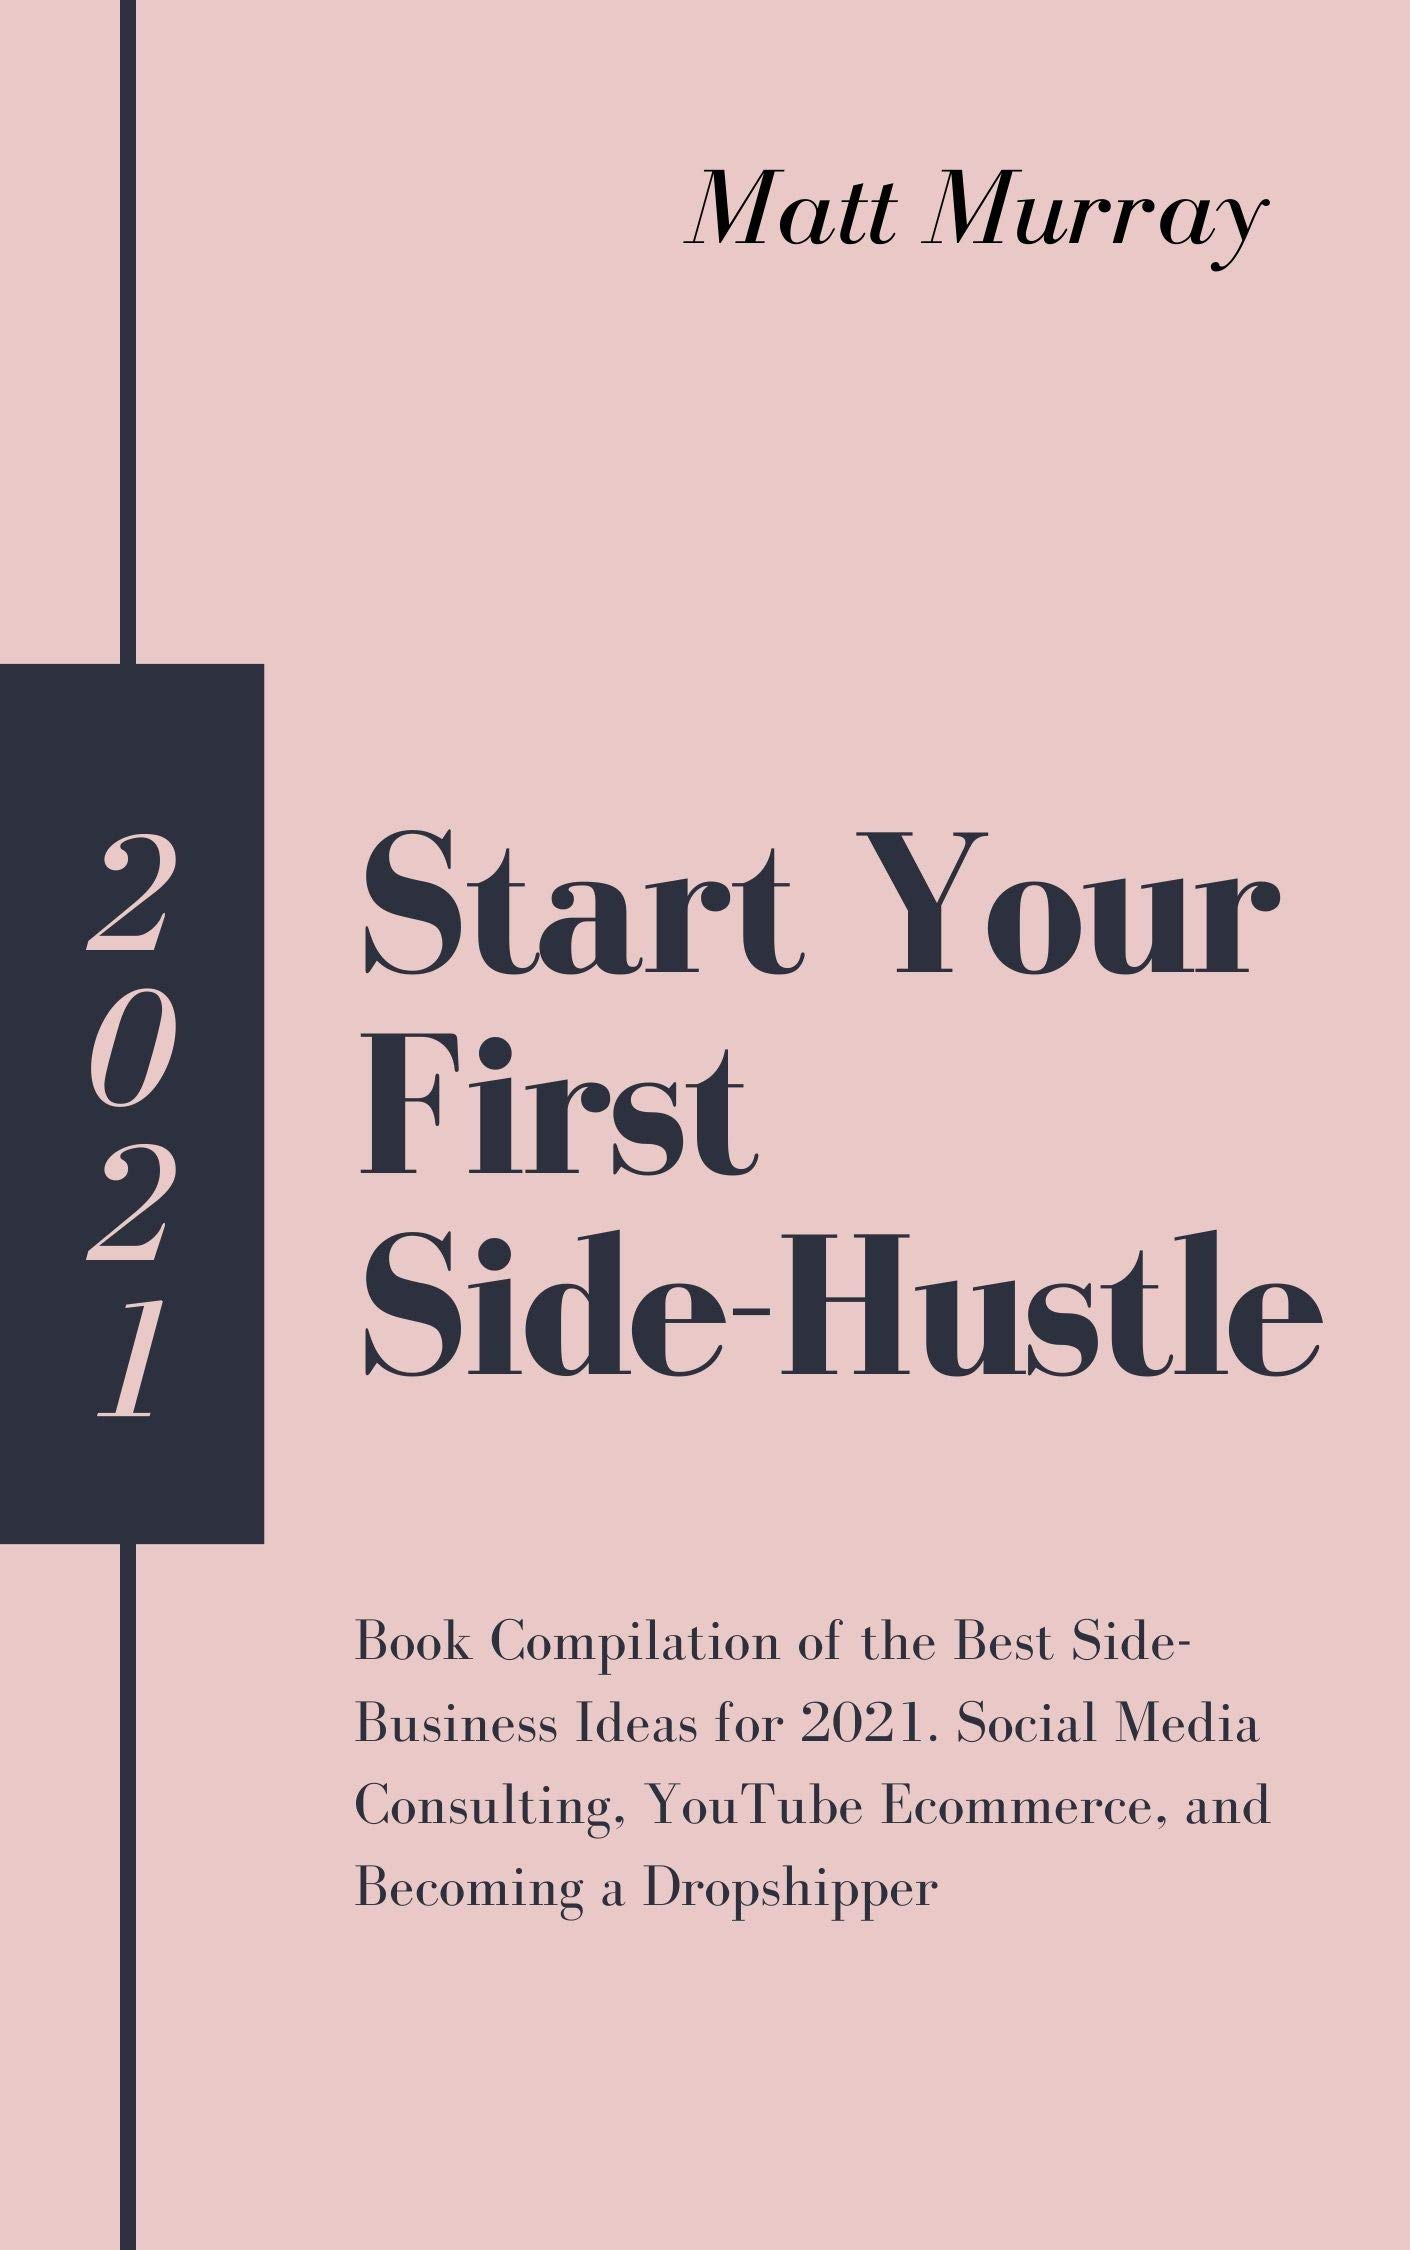 Start Your First Side-Hustle in 2021: Book Compilation of the Best Side-Business Ideas for 2021. Social Media Consulting, YouTube Ecommerce, and Becoming a Dropshipper